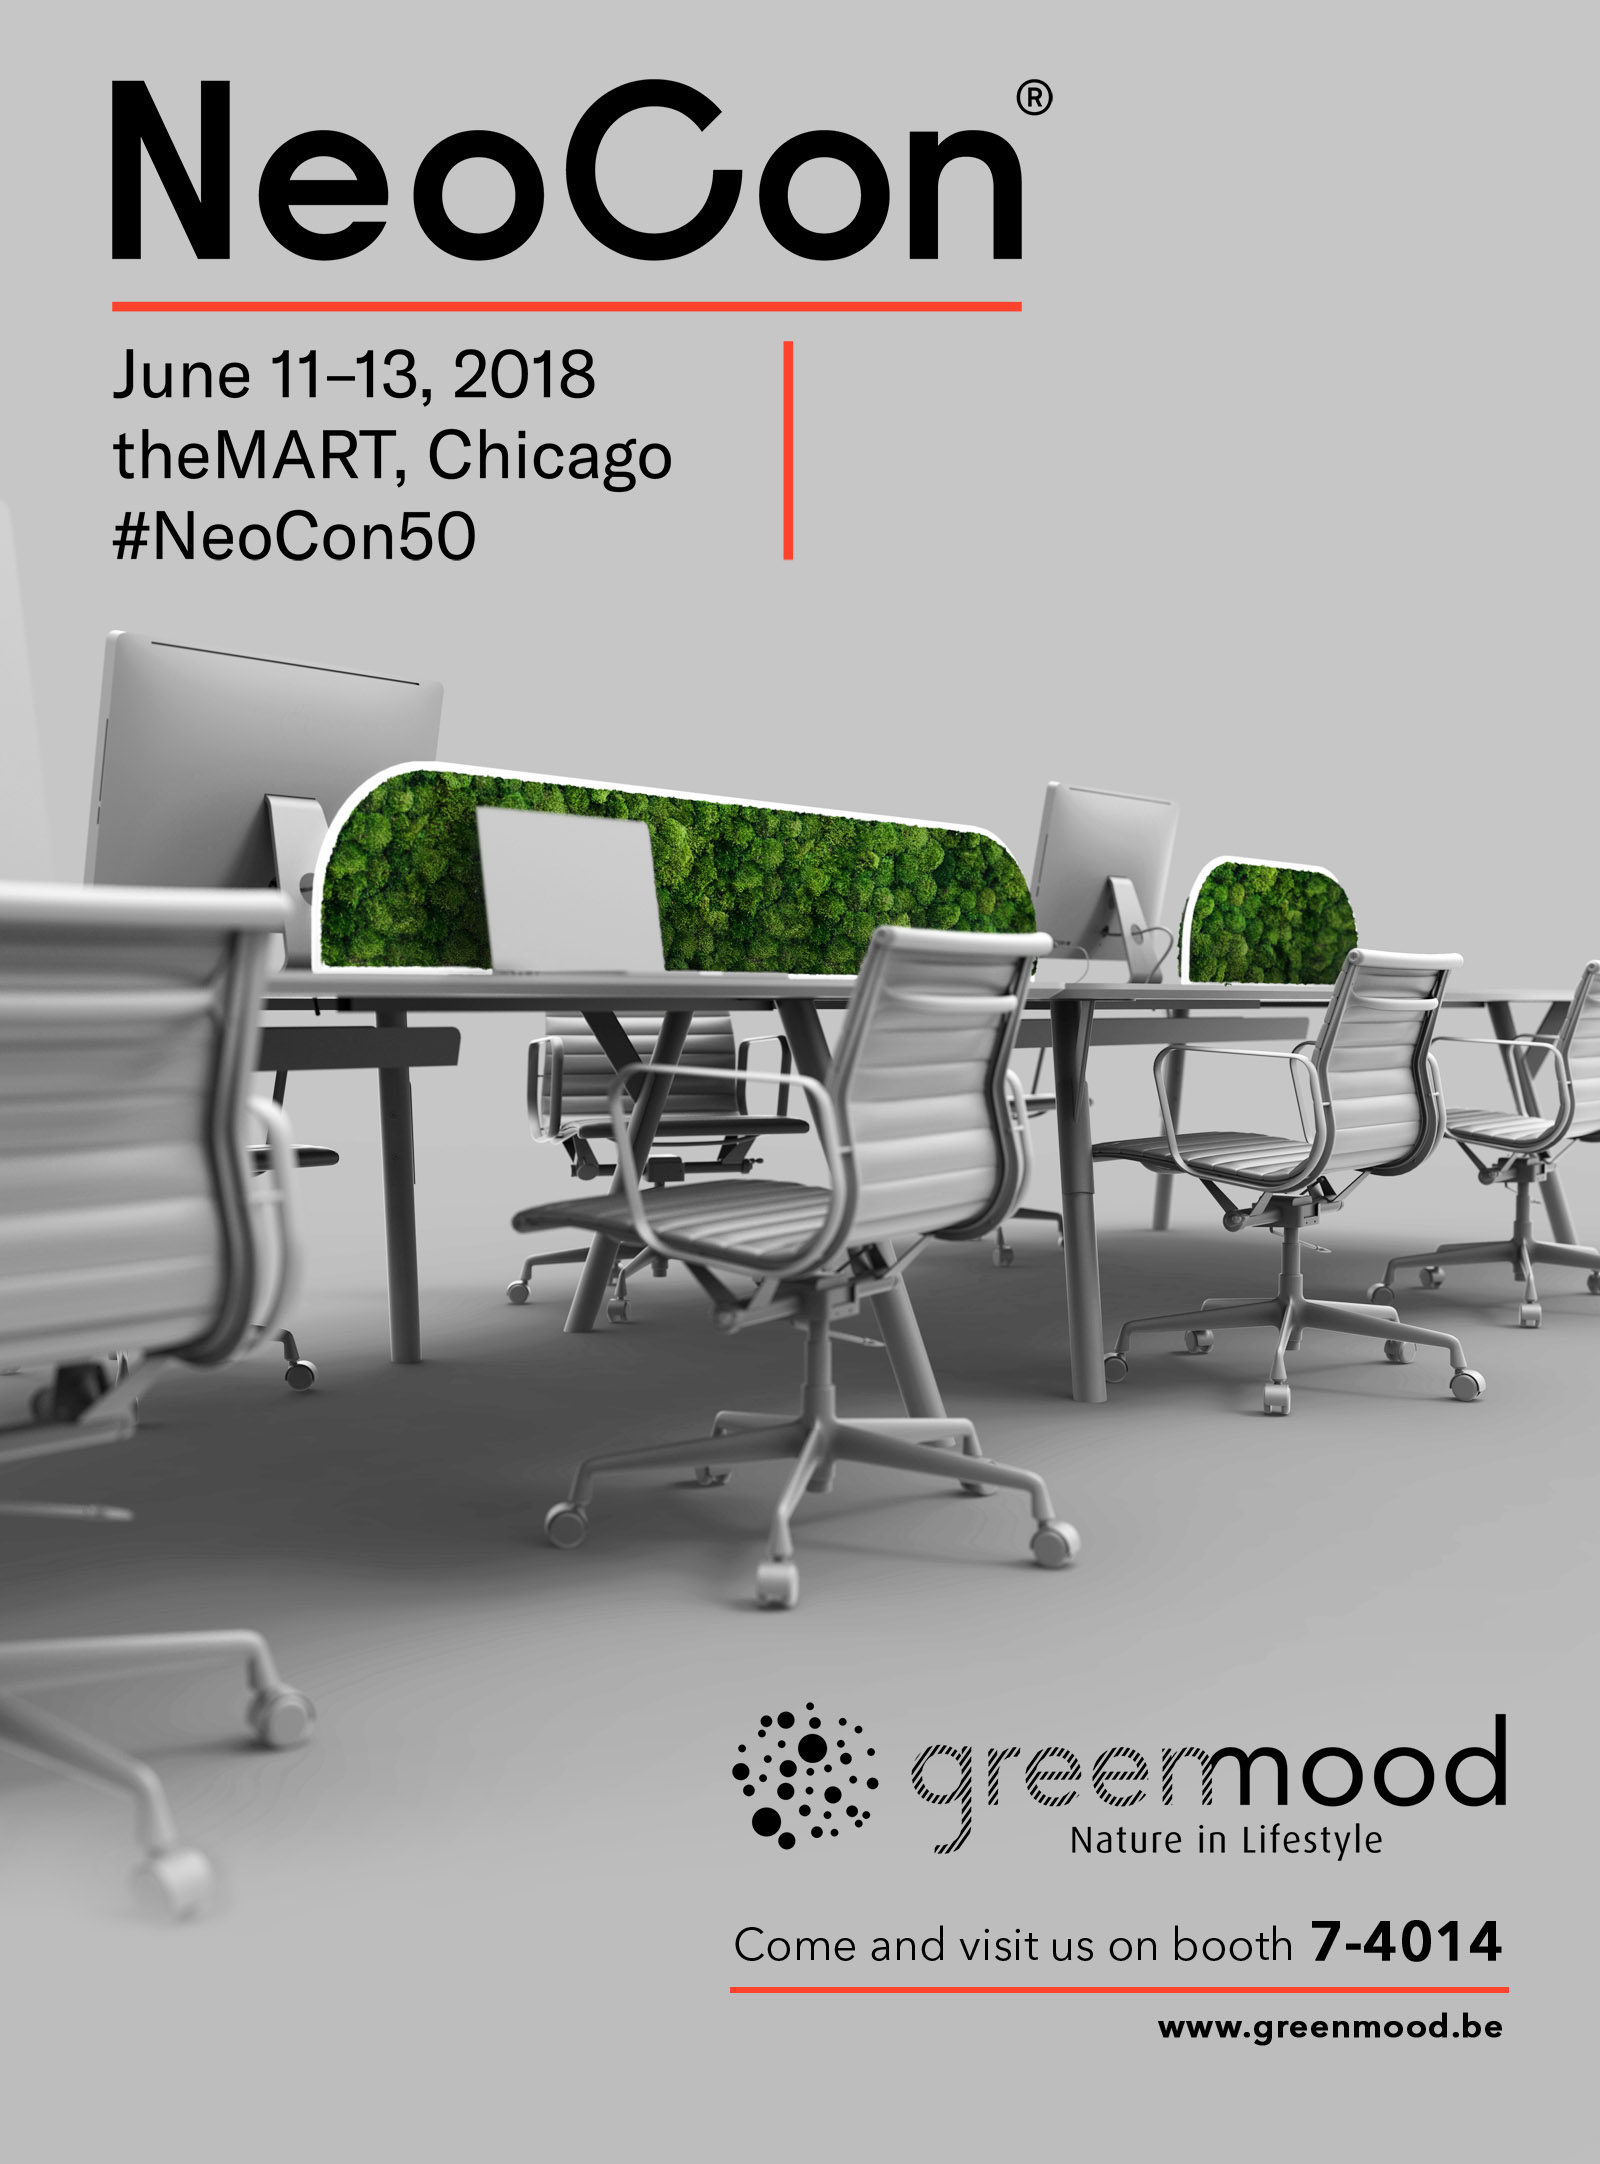 Greenmood in Archiproducts' article